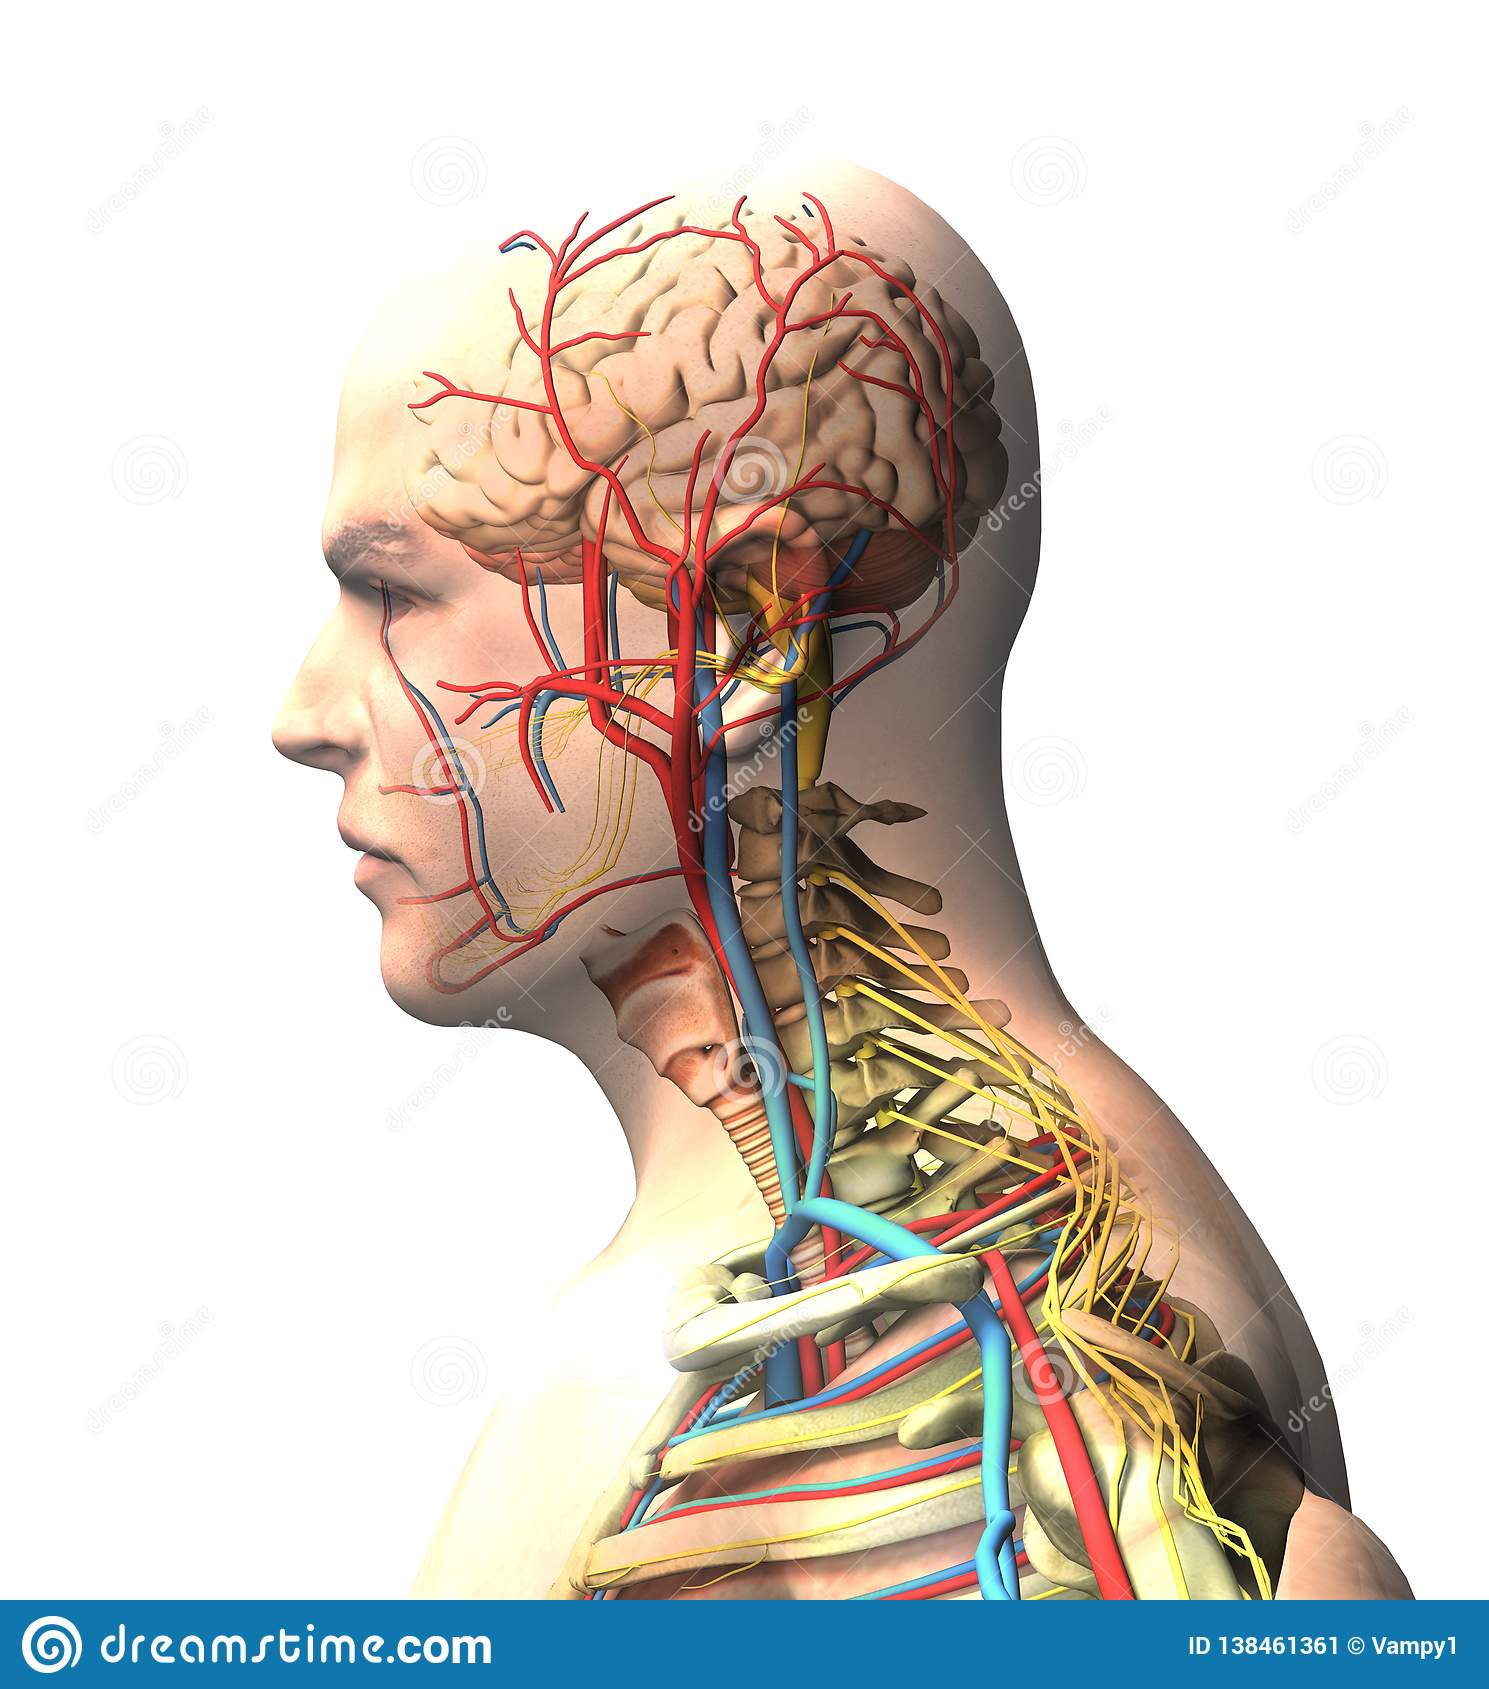 Man seen from the side, brain, face, x-ray view of arteries and veins, spine and rib cage